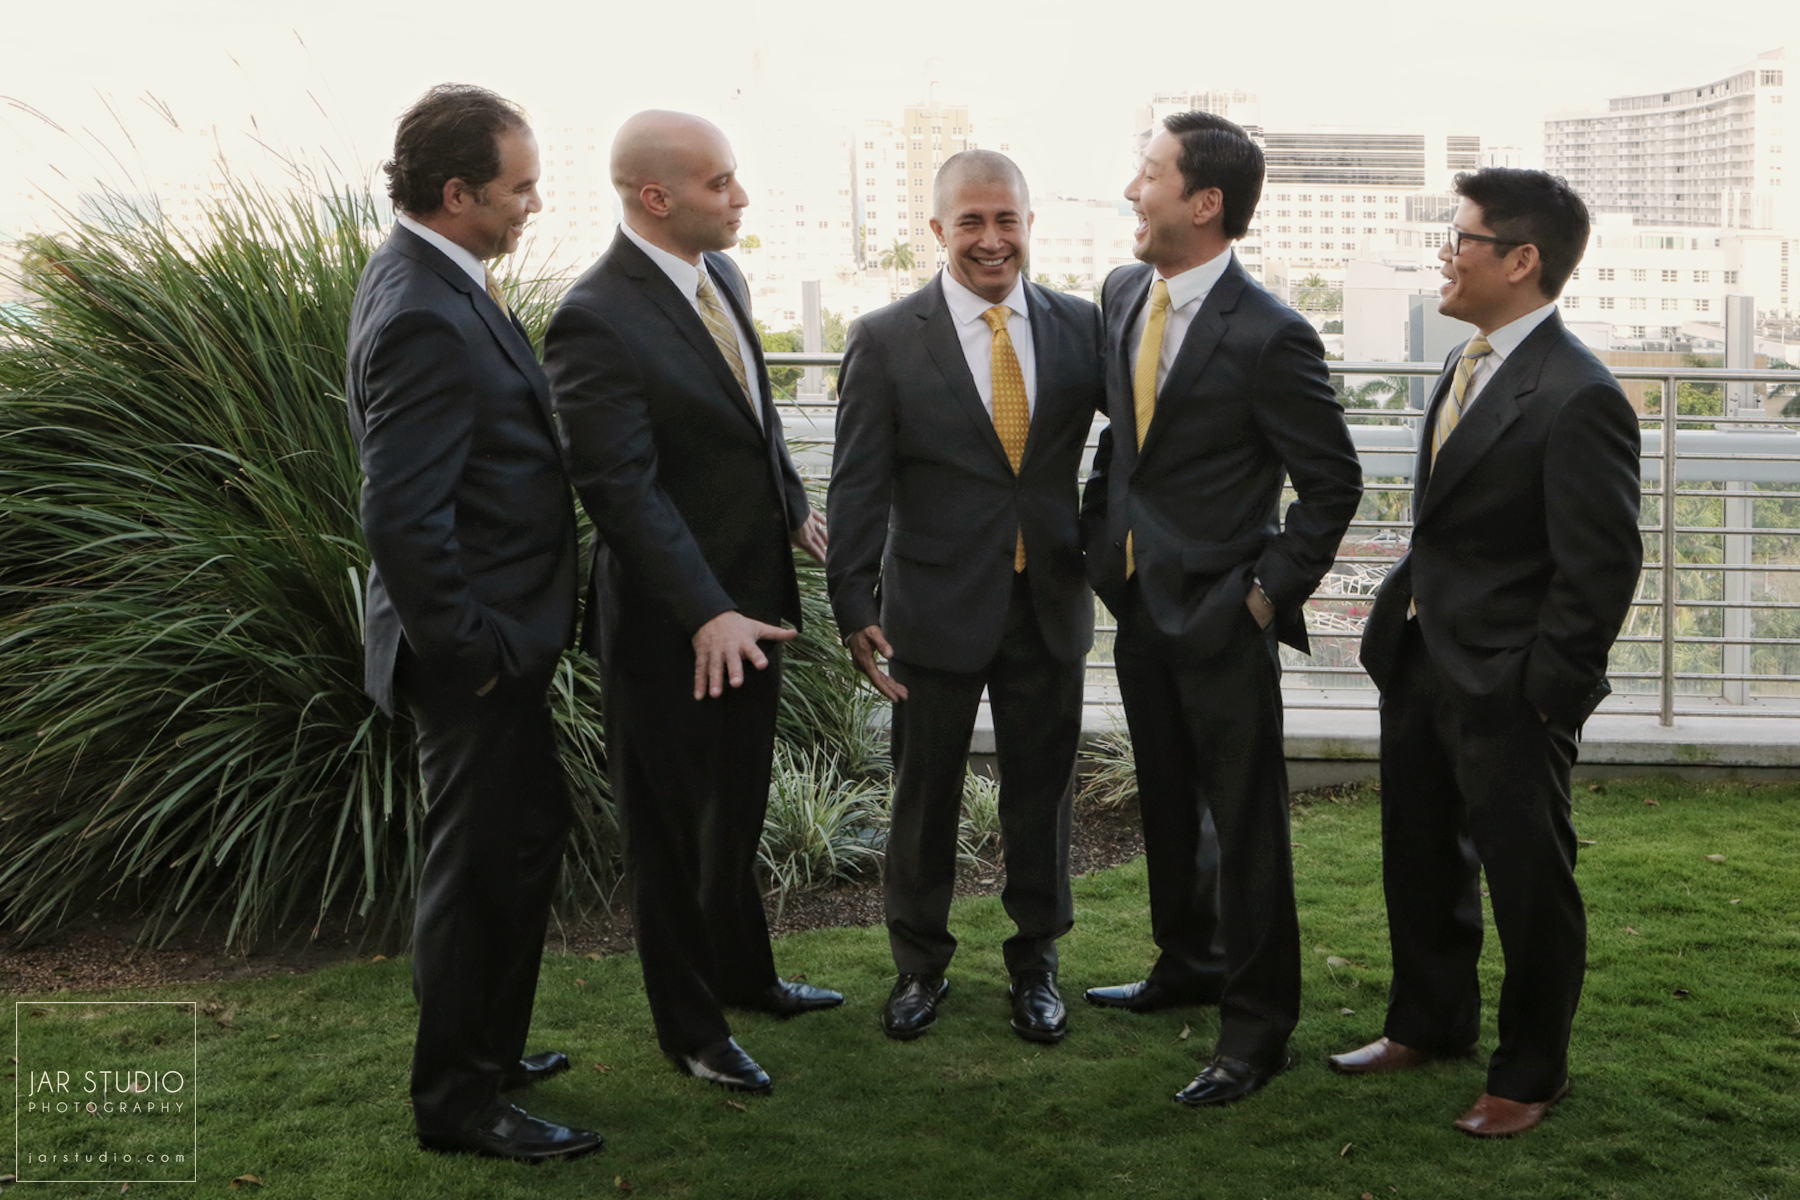 05-groomsmen-yellow-ties-jarstudio-photography.JPG